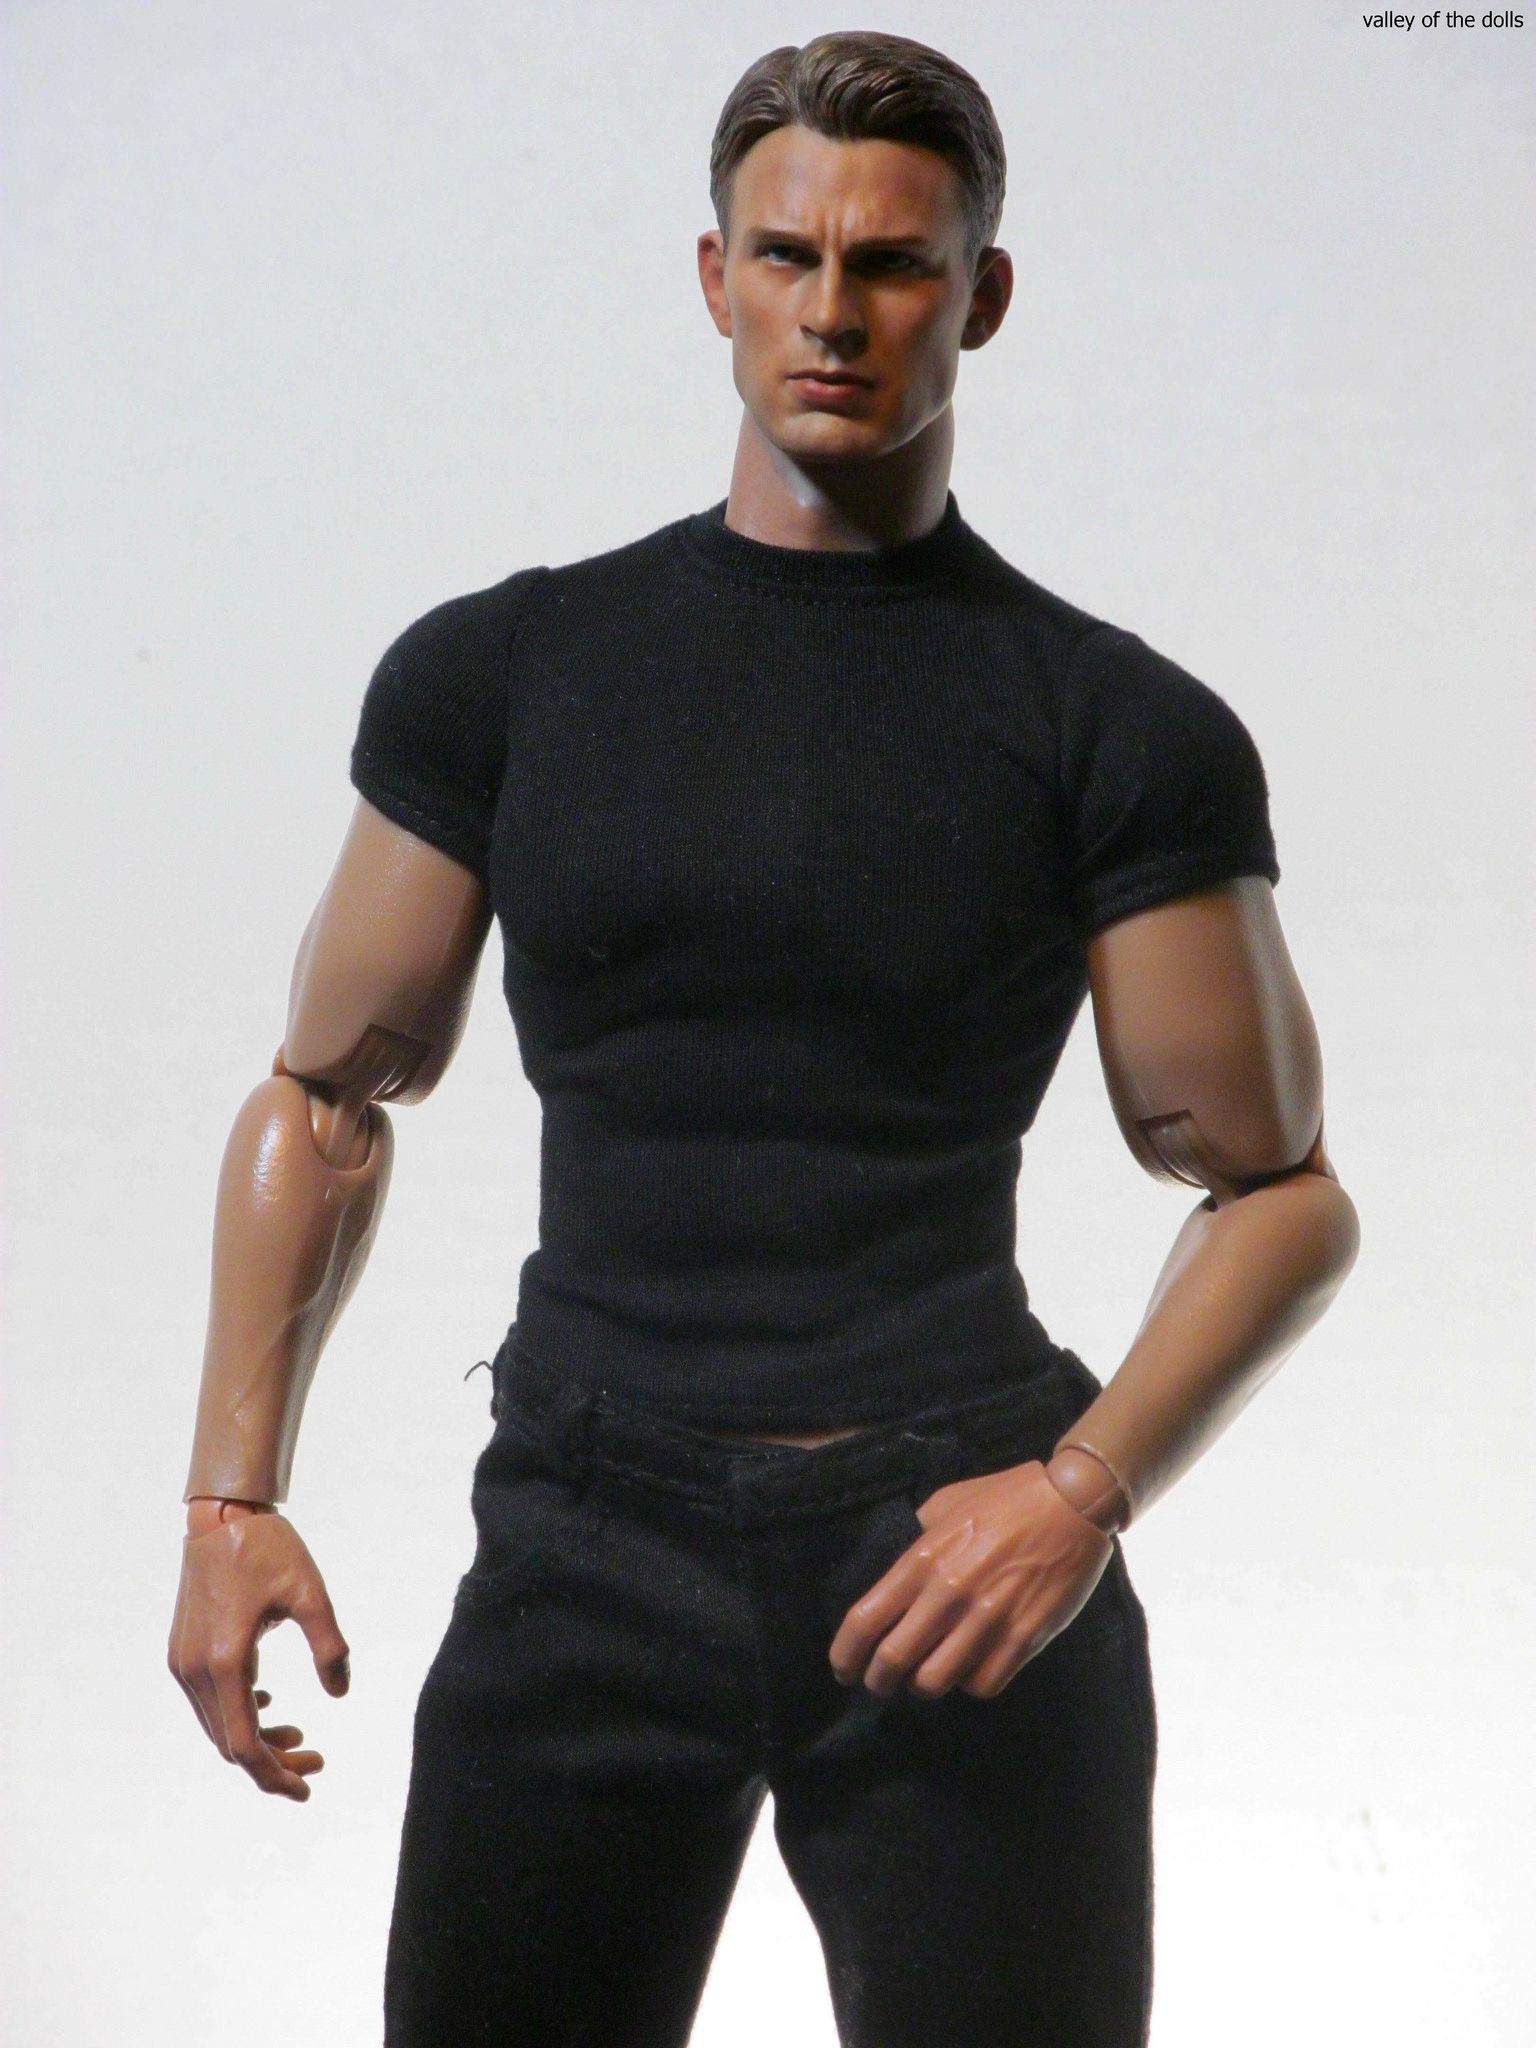 https://flic.kr/p/BL88kH | Chris Evans Action Figure | I found this custom Chris Evans head on Ebay! I really liked the Hot Toys Captain America figures but I'm not a fan of the long neck head sculpt! I was hoping some enterprising artist would do a decent custom short neck version and at long last they have!